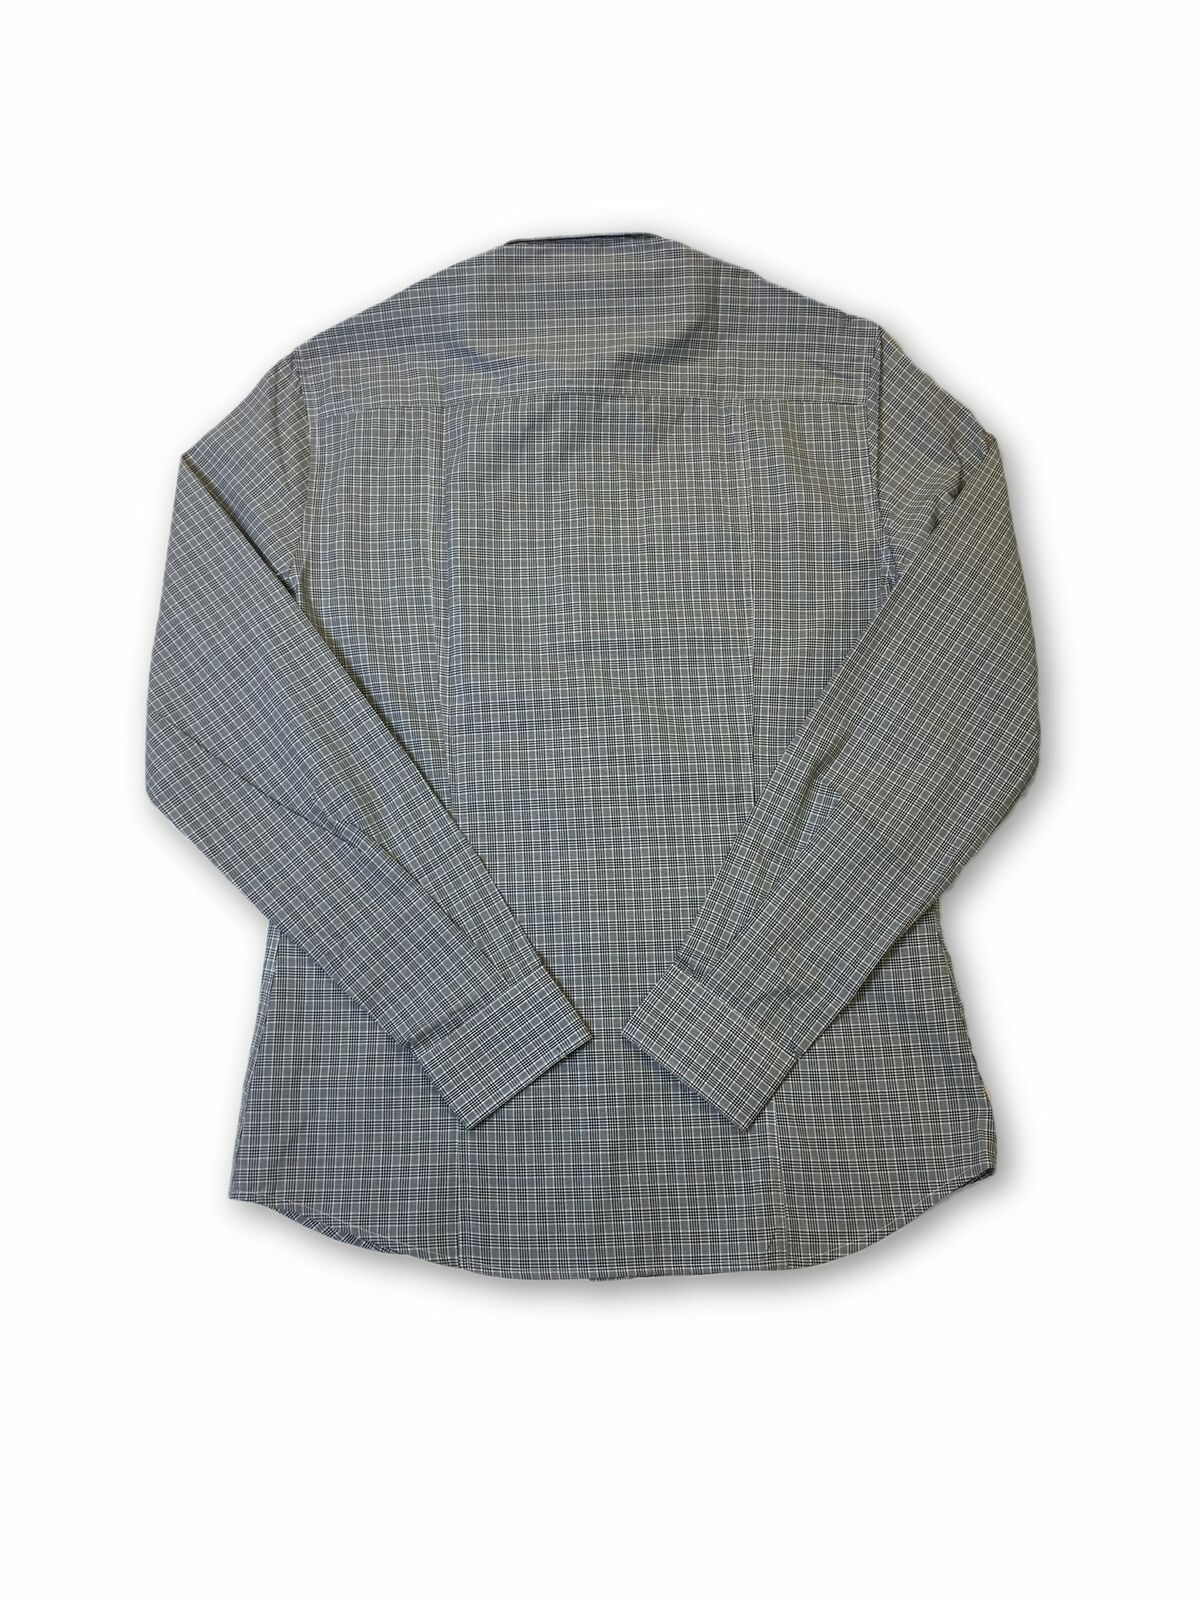 Versace-Jeans-039-Norwich-039-slim-fit-shirt-in-grey-check thumbnail 6